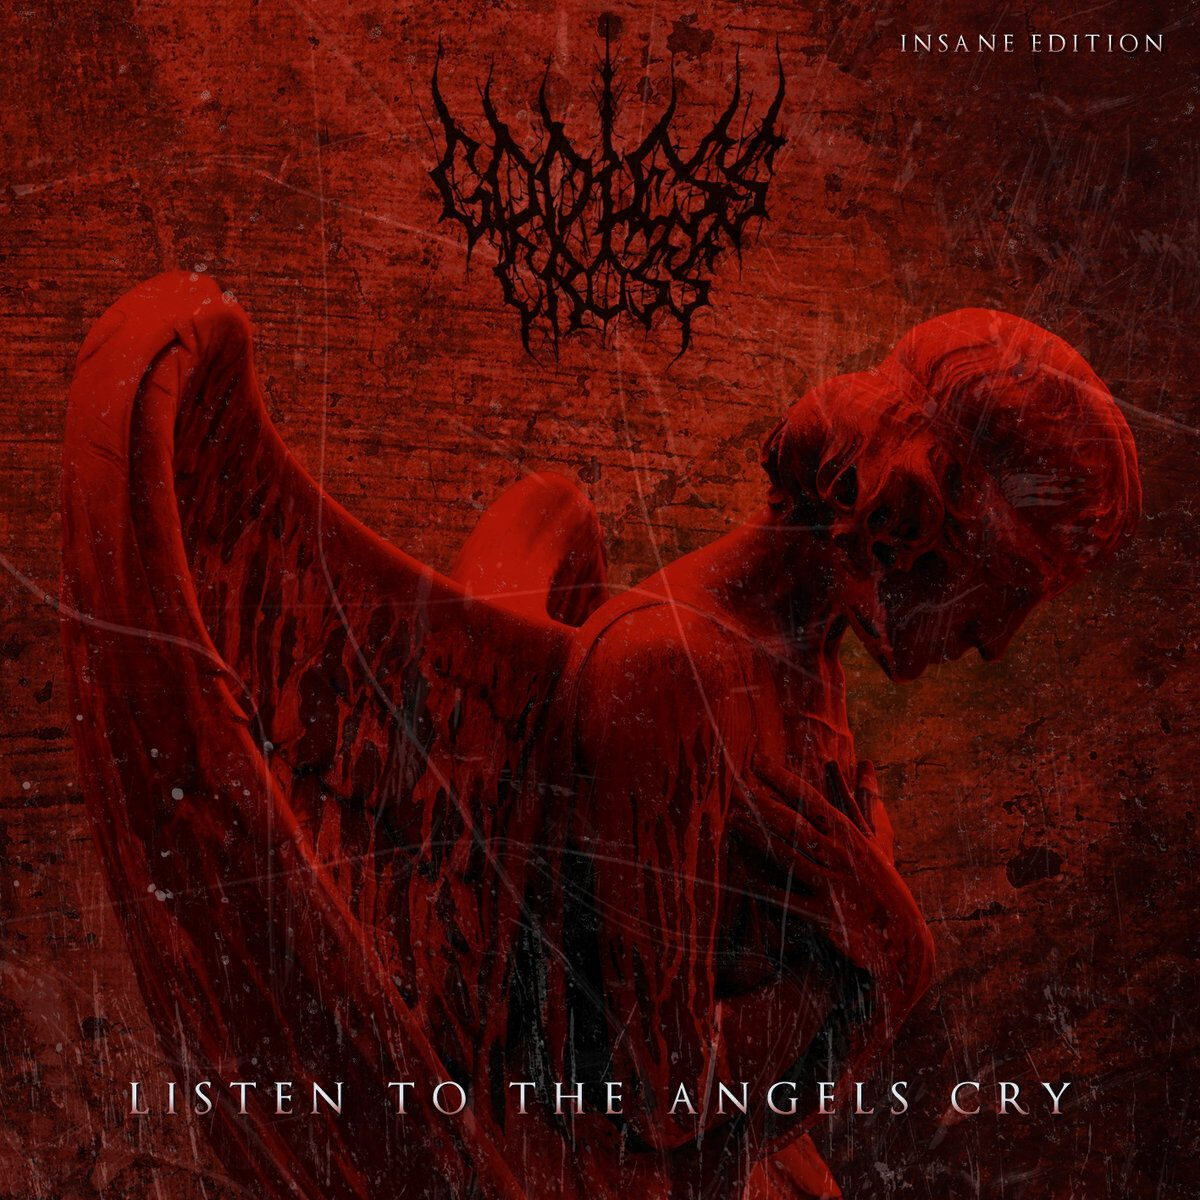 Godless Cross back with all new extended download EP: 'Listen To The Angels Cry (Insane Edition)